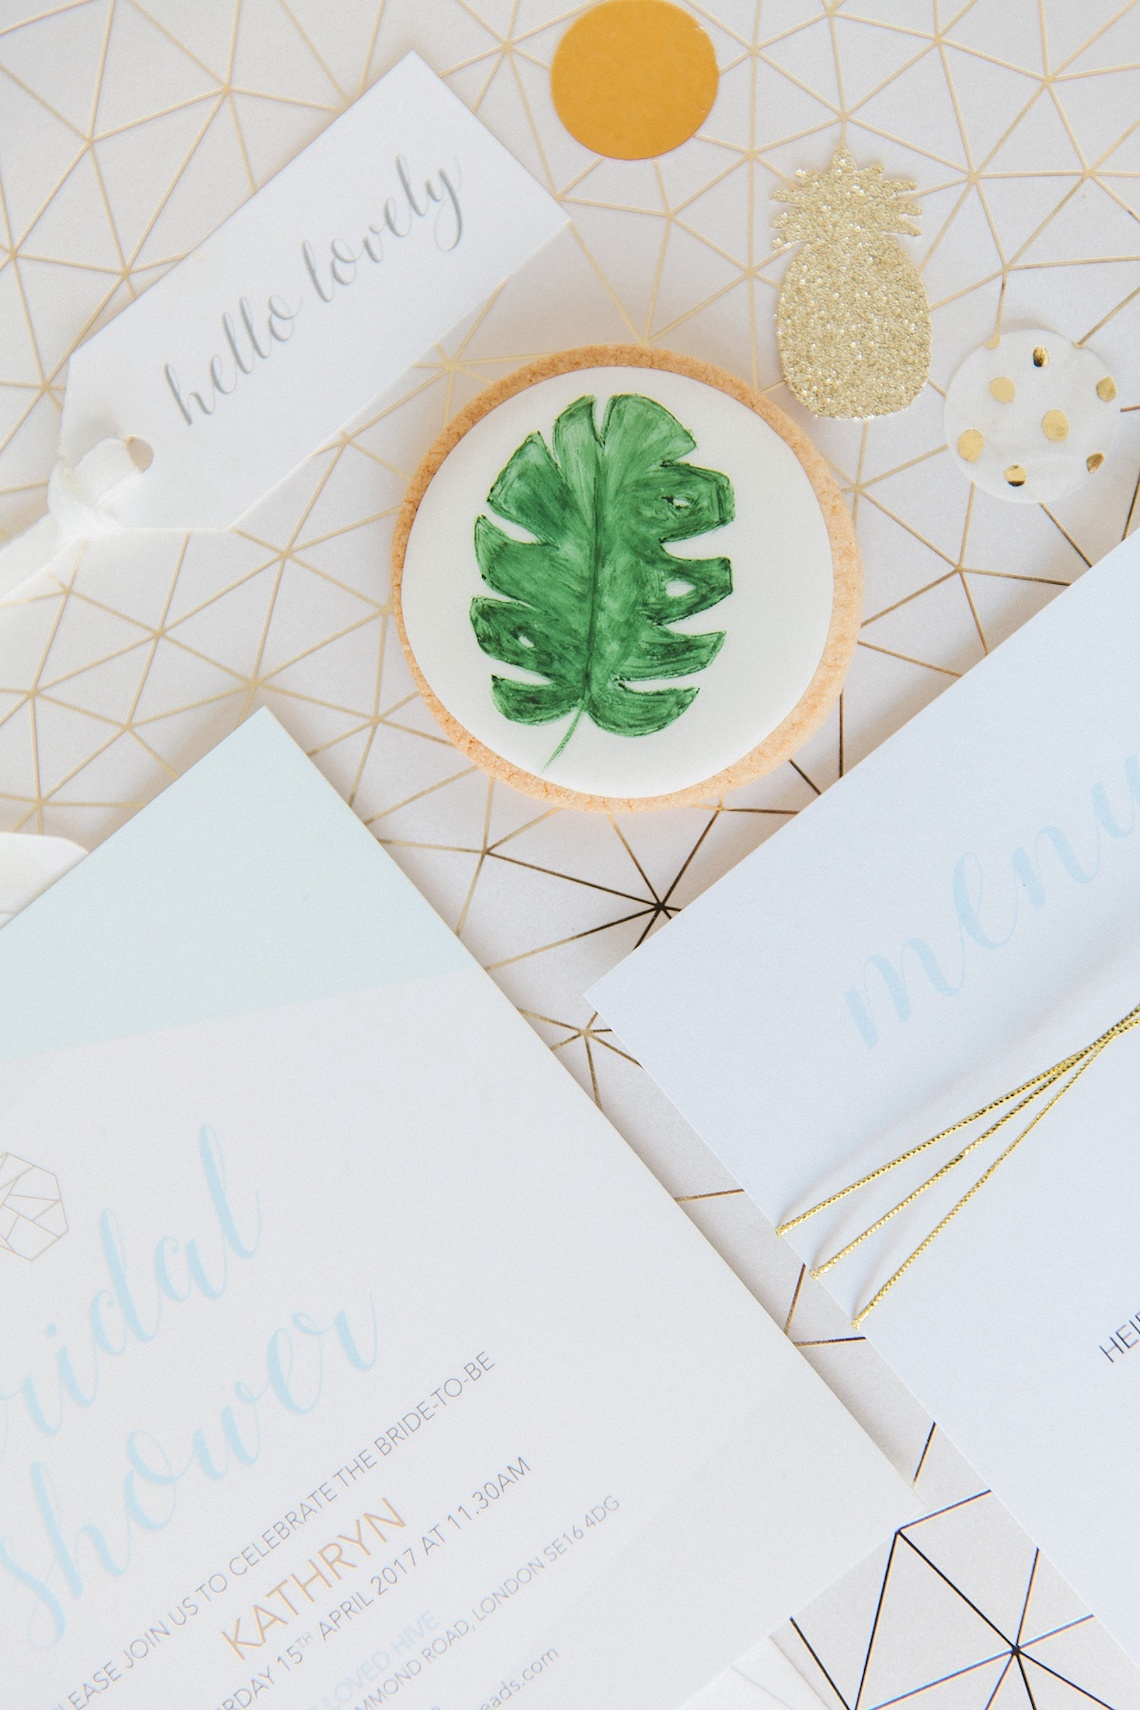 Colorful Bridal Bash with Oodles of Chic Tropical Treat Ideas | Maxeen Kim 56